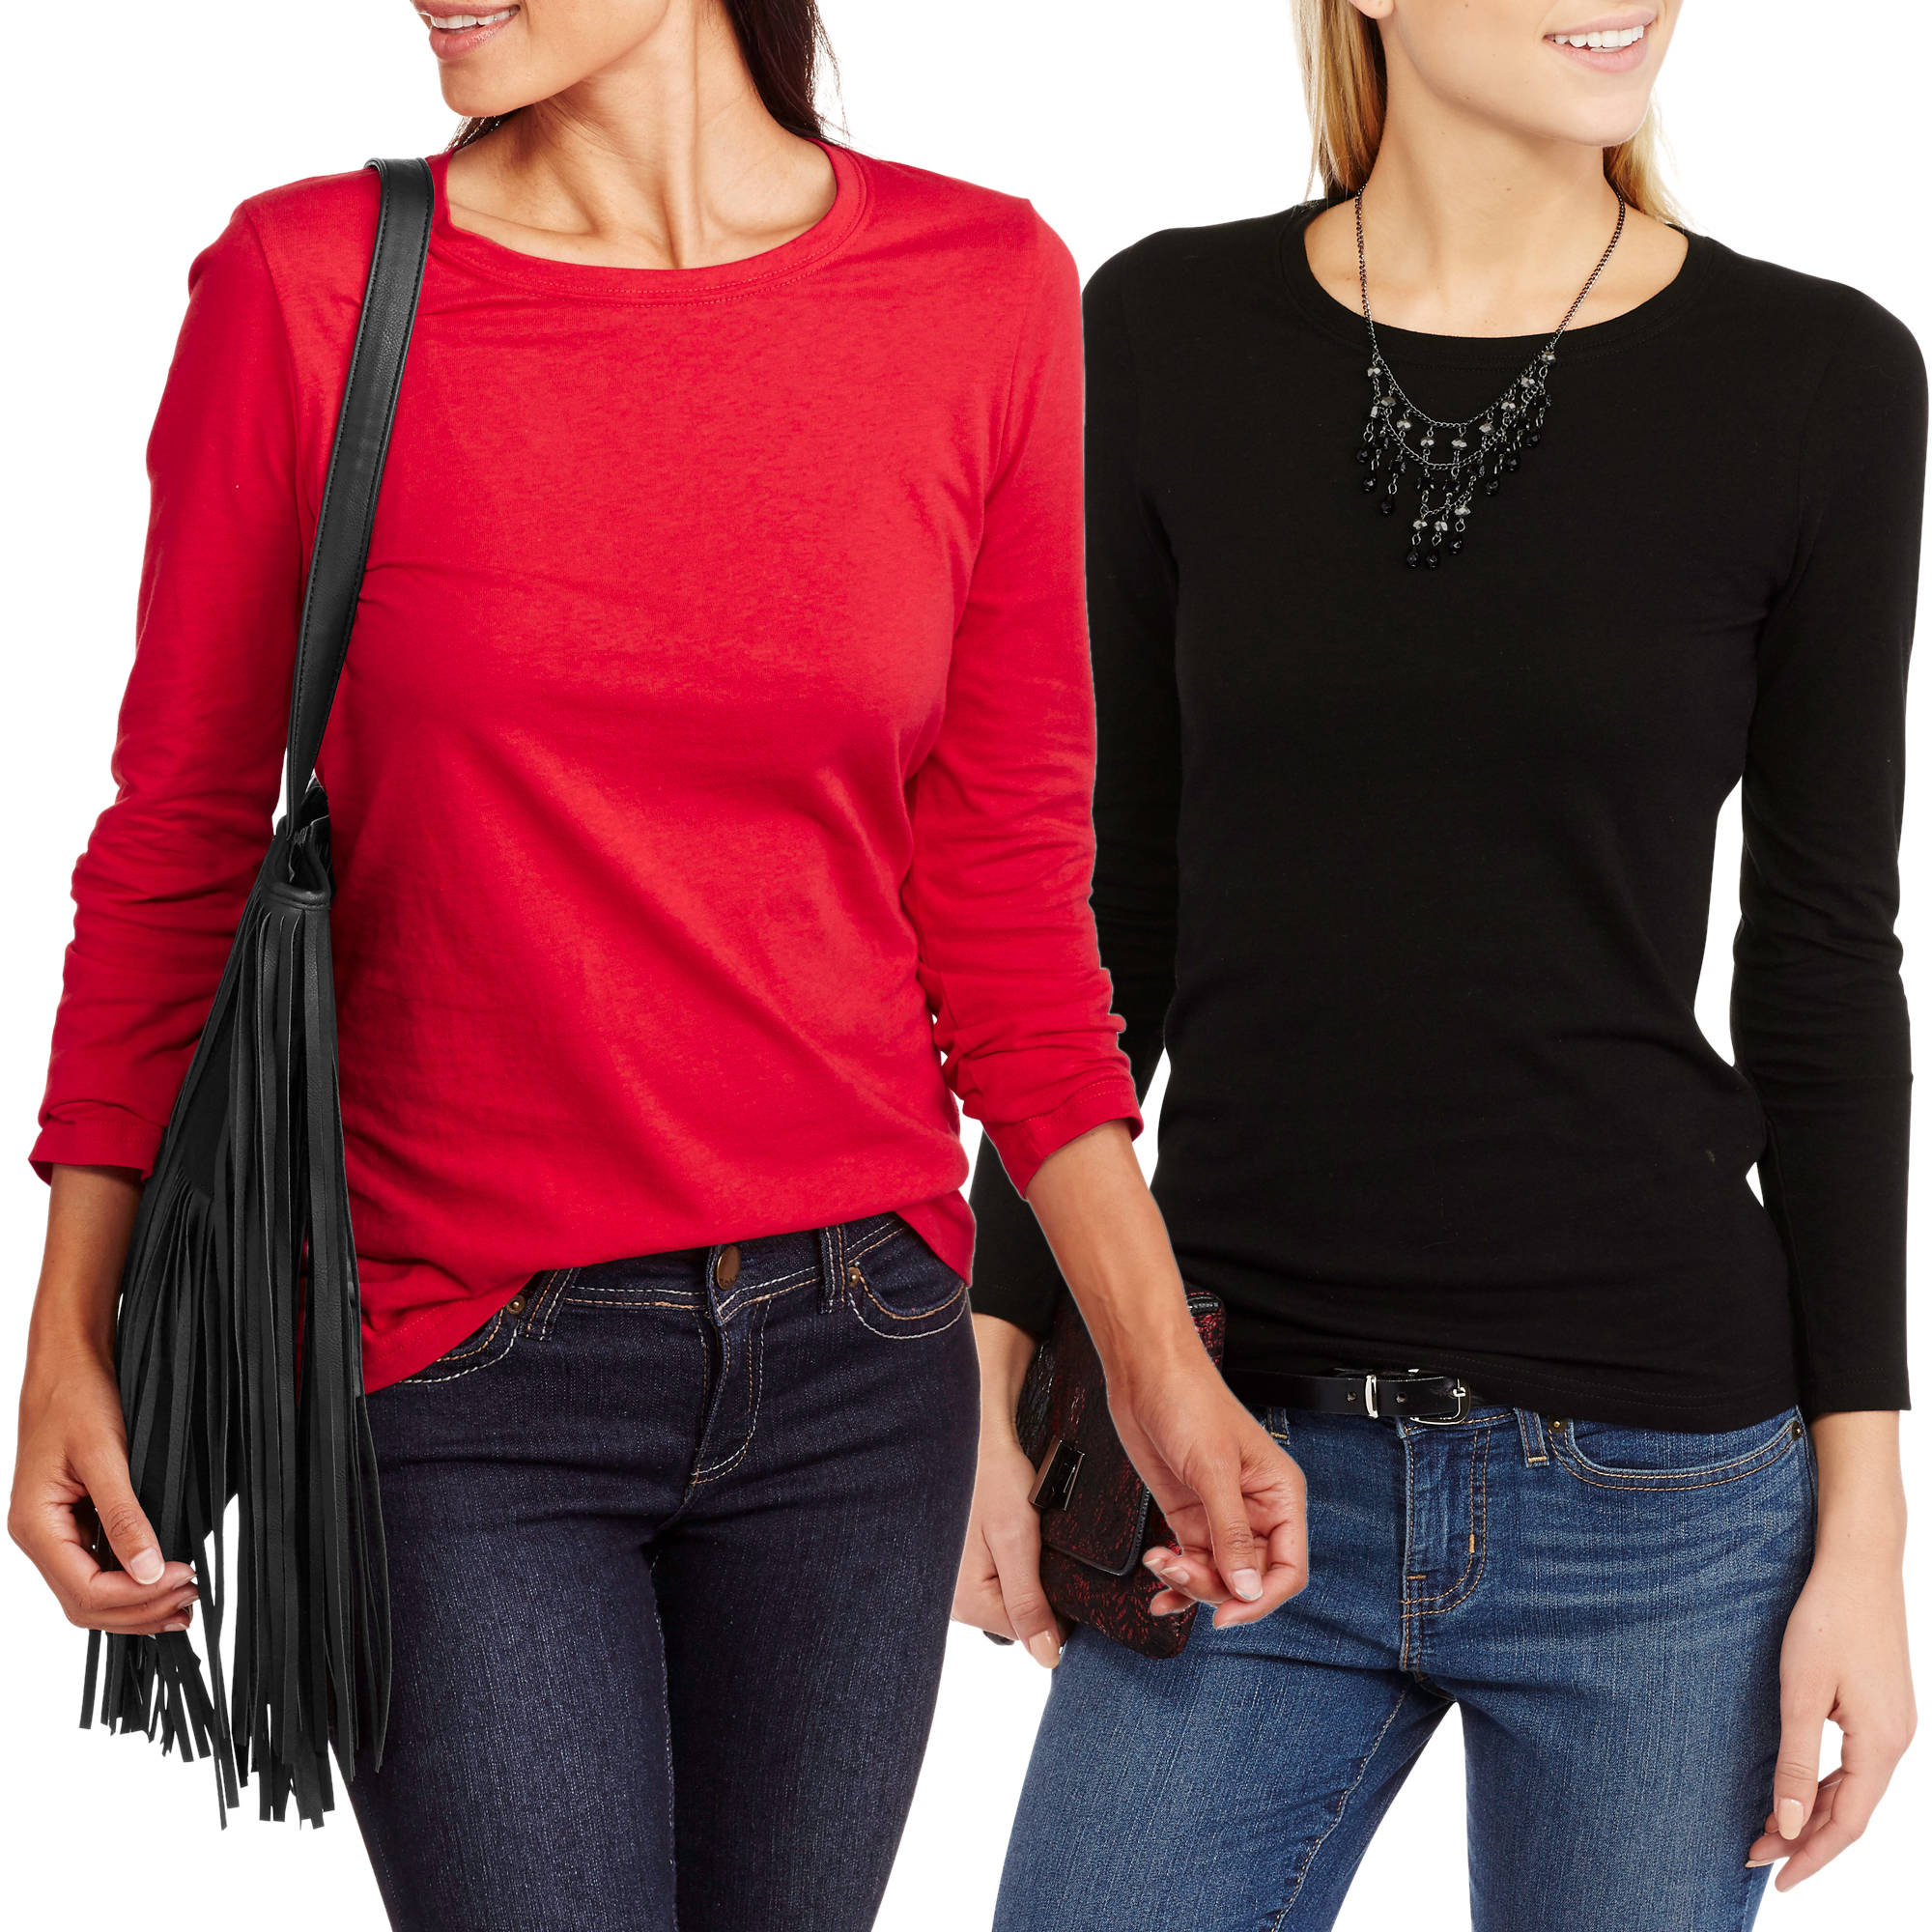 Faded  Glory Womens' Long Sleeve Crew Neck T-Shirt, 2 Pack Value Bundle